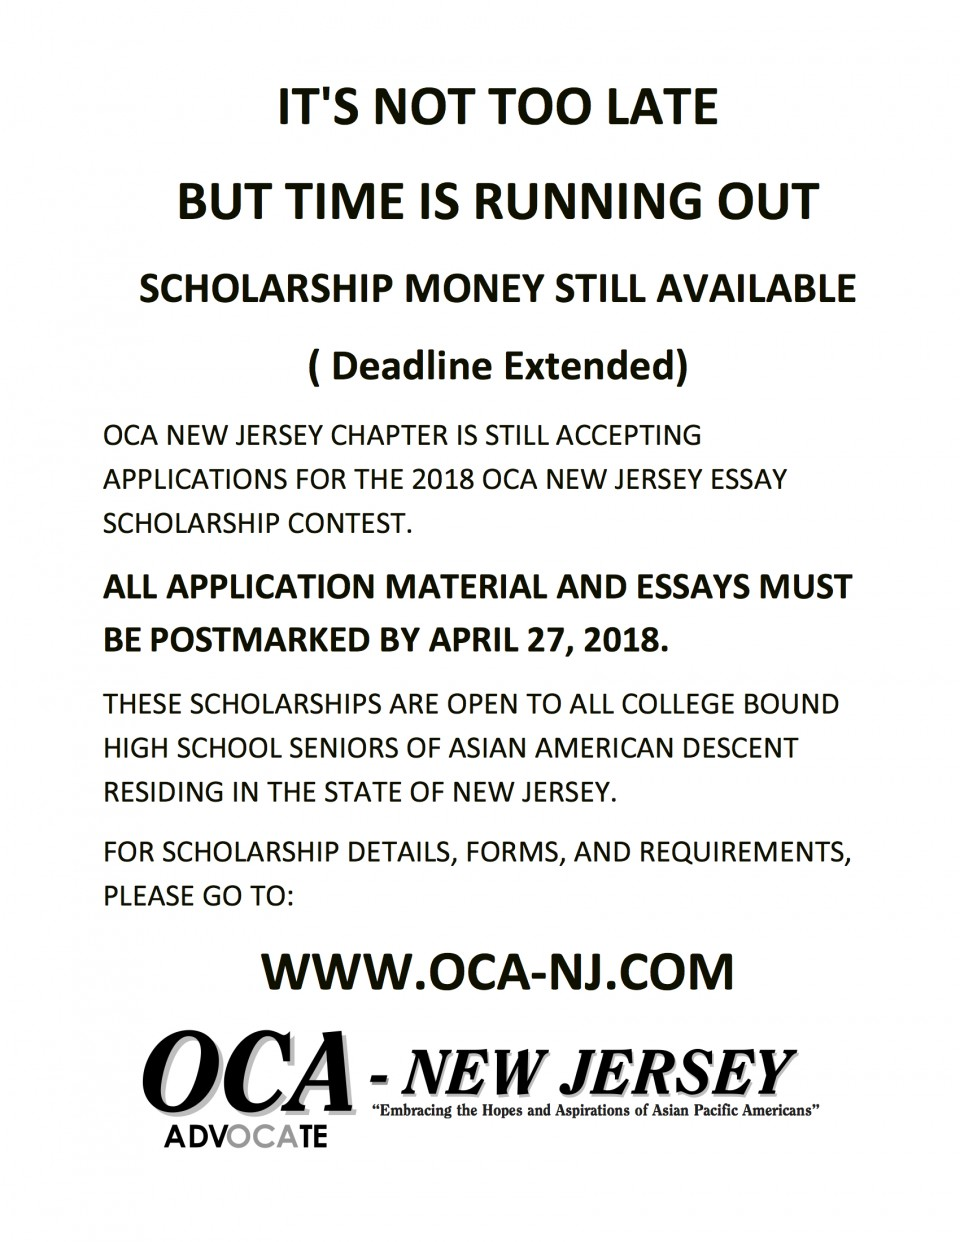 014 Essay Example Scholarships Entended Deadline Oca Nj Shocking For High School Students Study Abroad Examples 2018 Bachelors And Masters 960